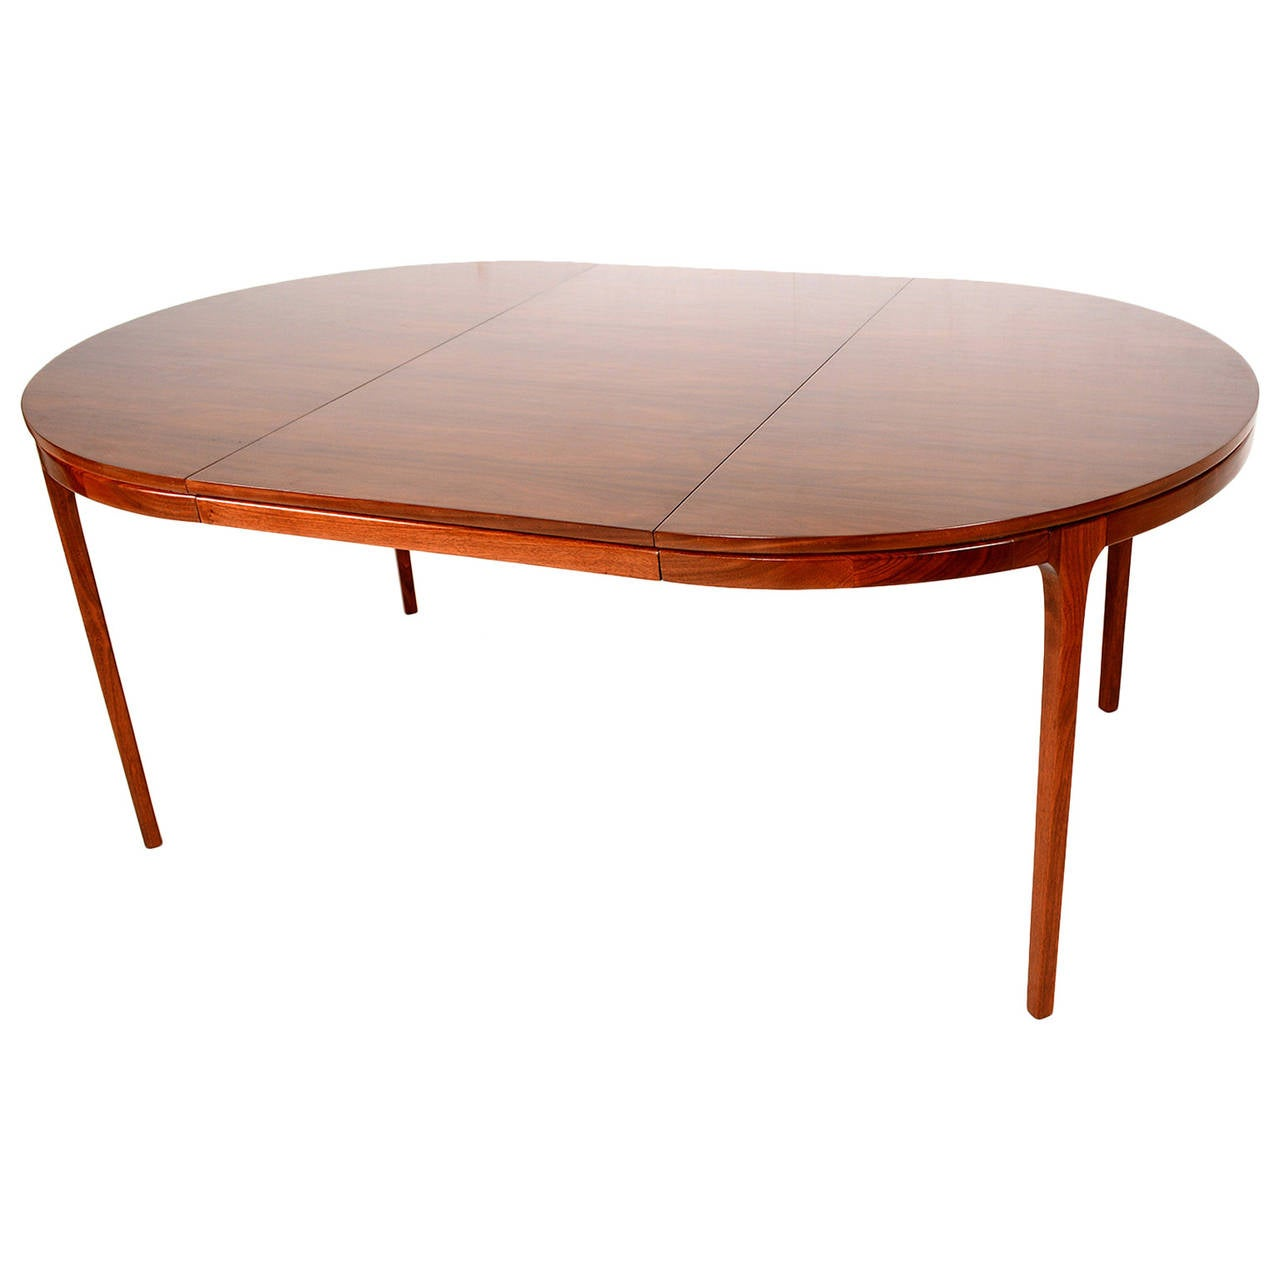 Walnut Oval Dining Table Mid Century at 1stdibs : 2899962l from www.1stdibs.com size 1280 x 1280 jpeg 57kB